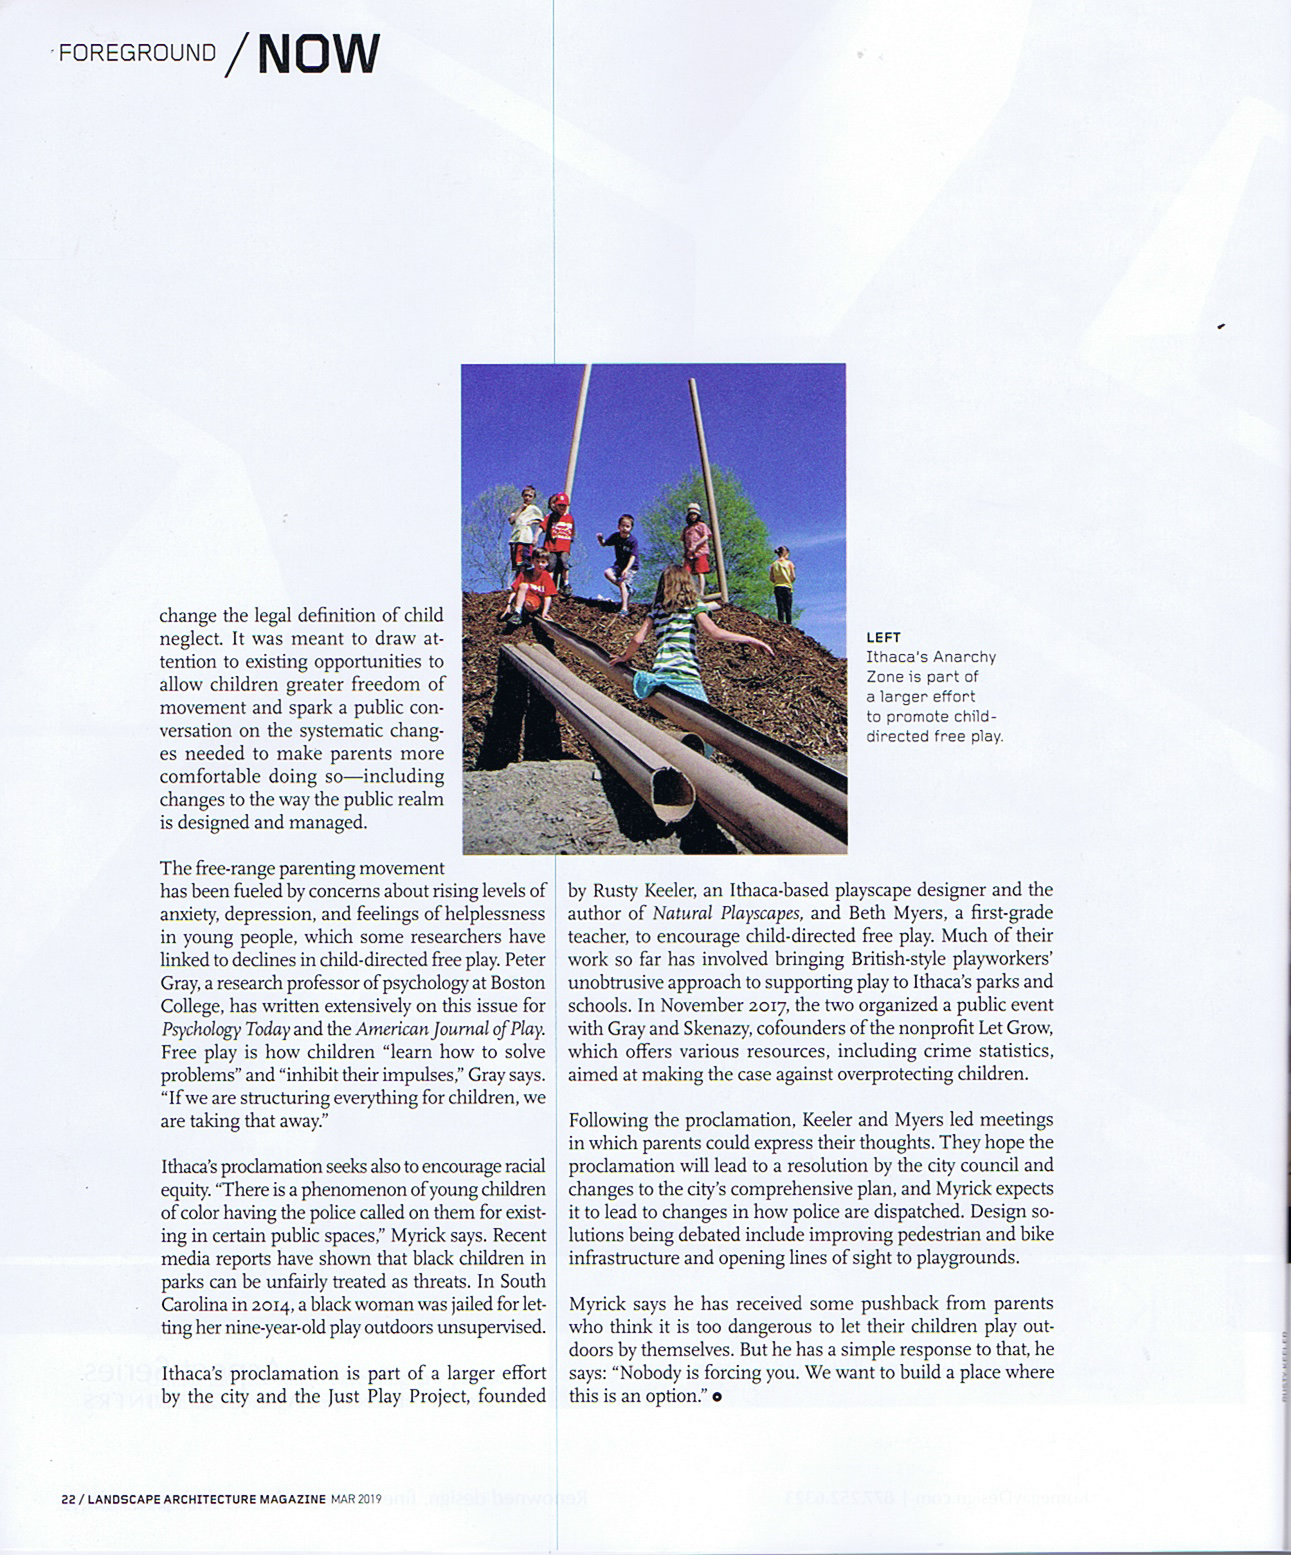 freerange Ithaca - landscape arch mag_Page_2.png